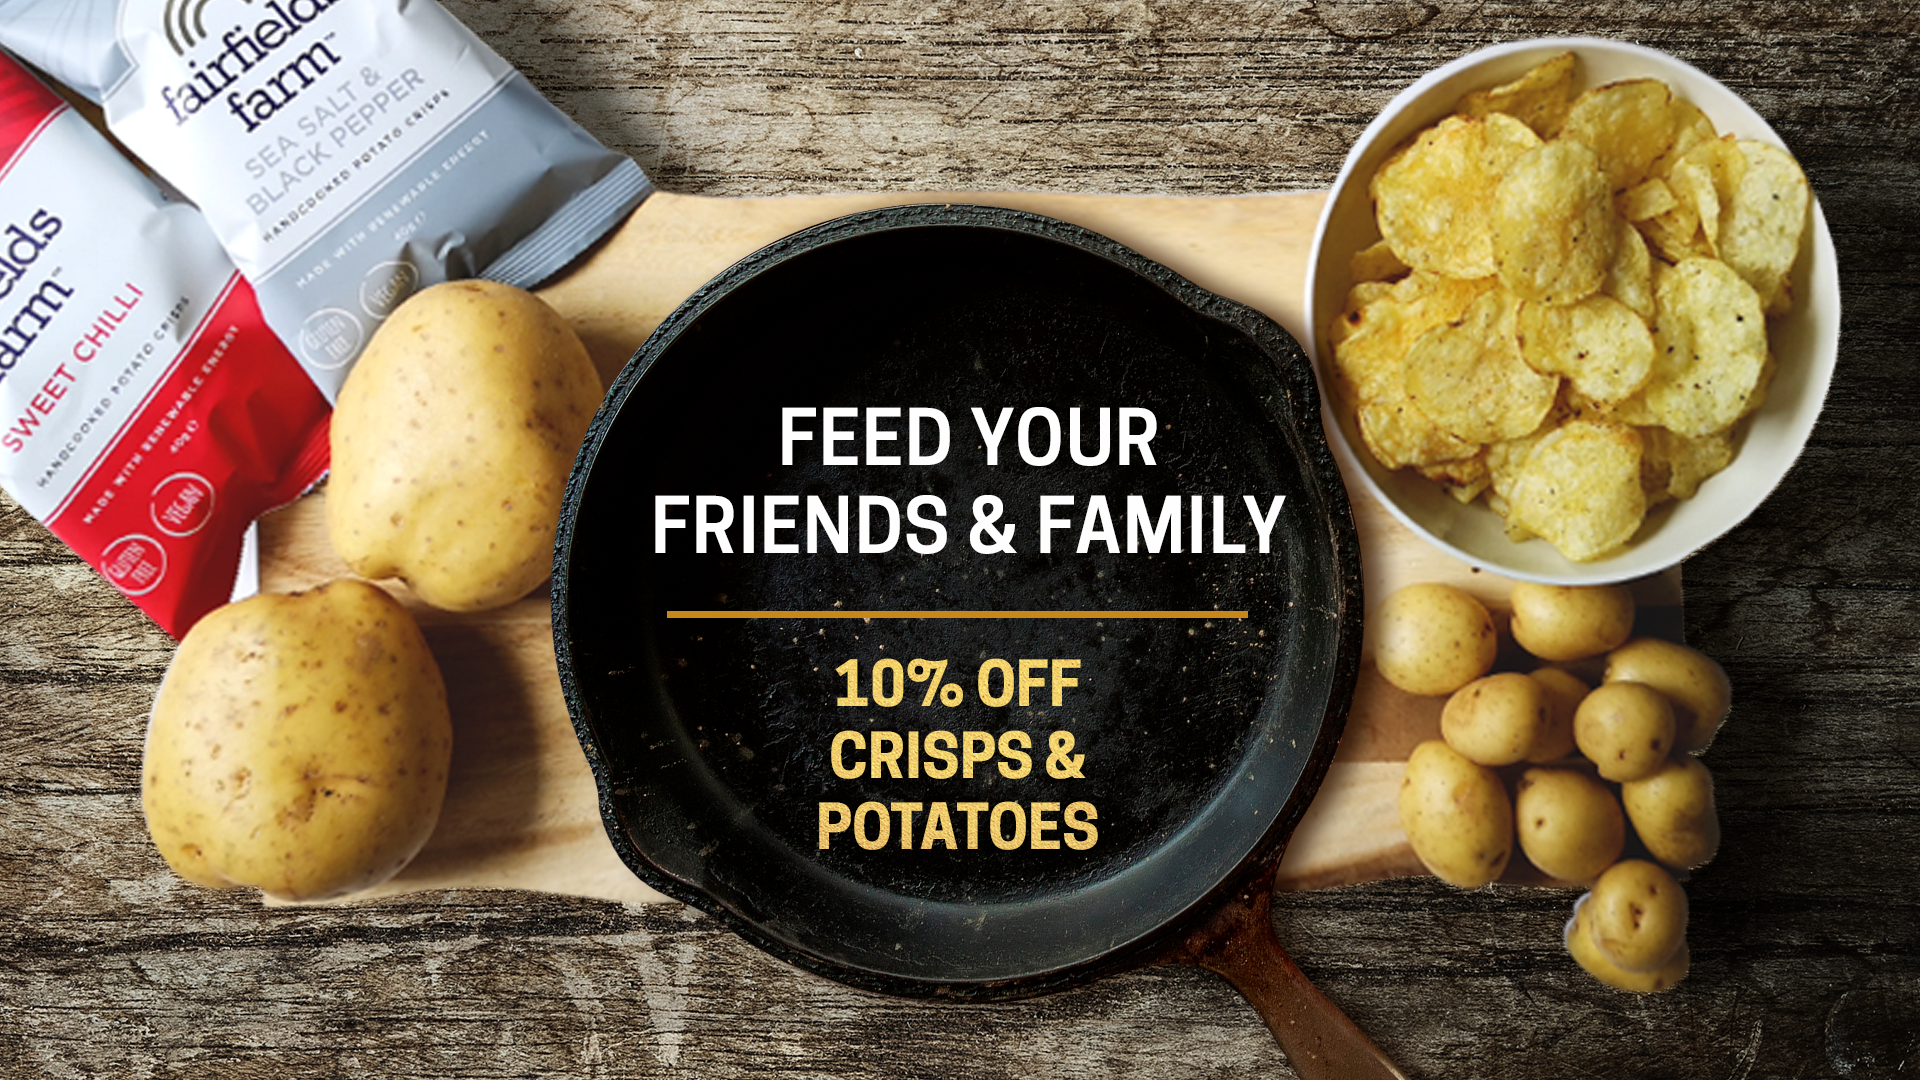 10% Off to Feed Your Friends & Family